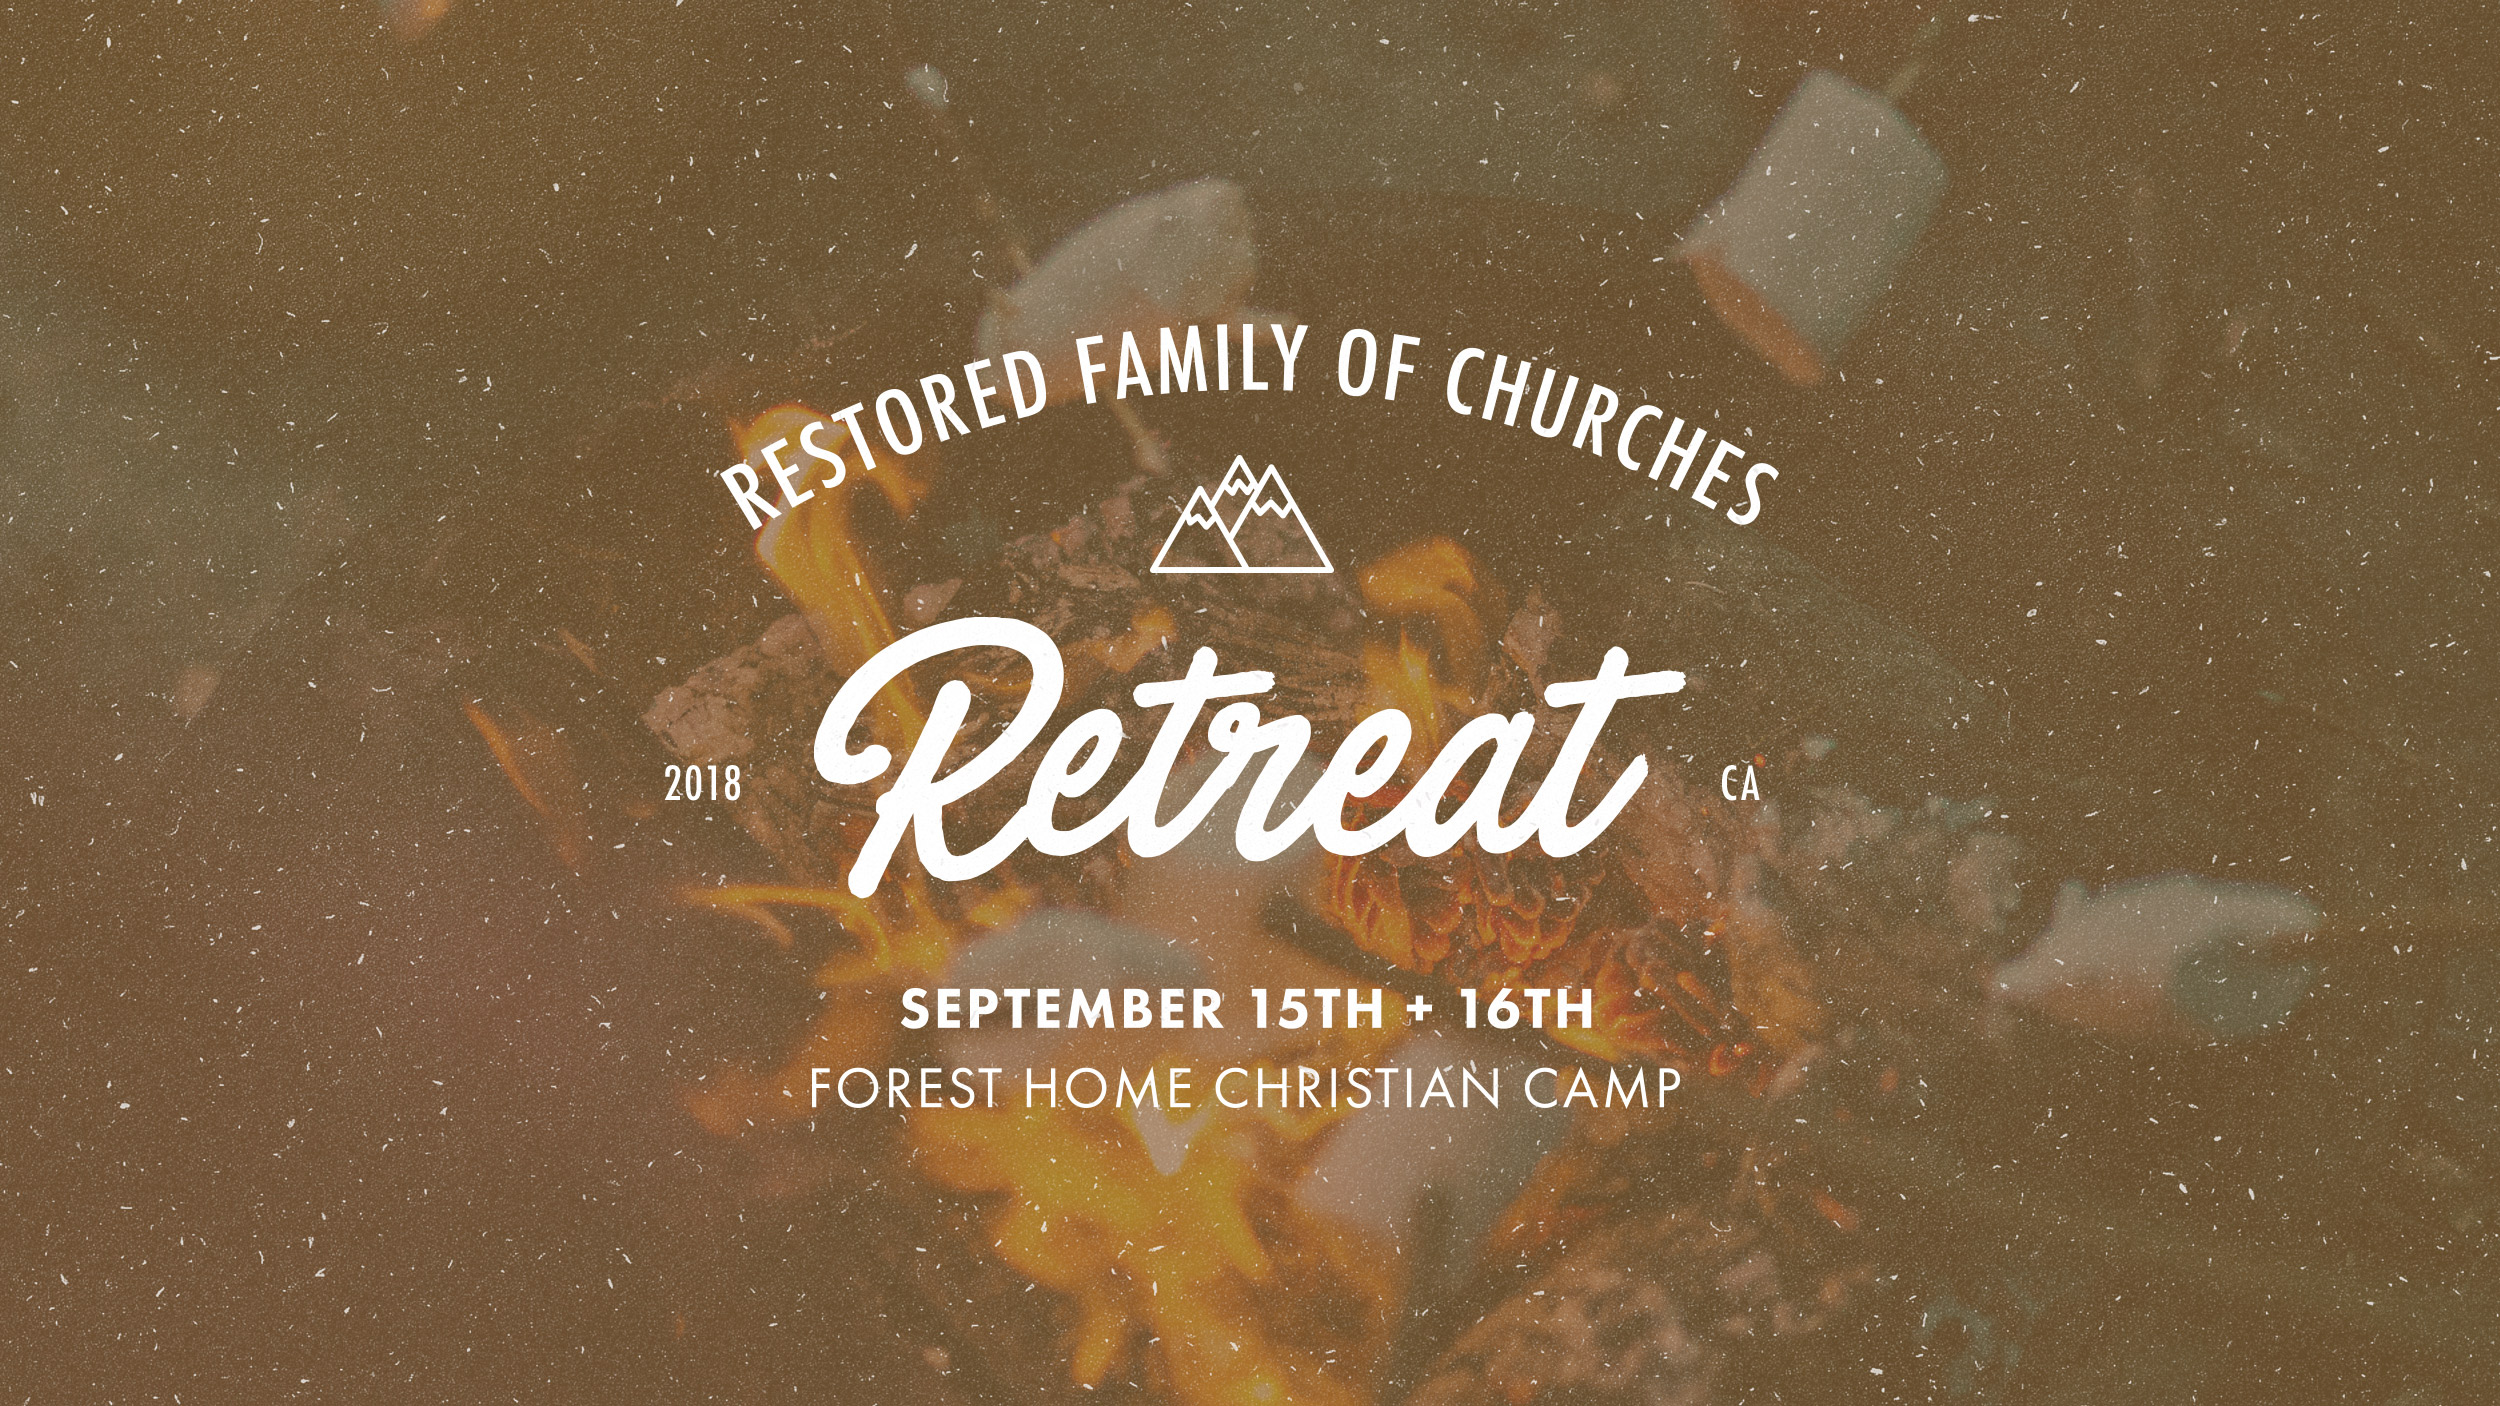 Foc retreat